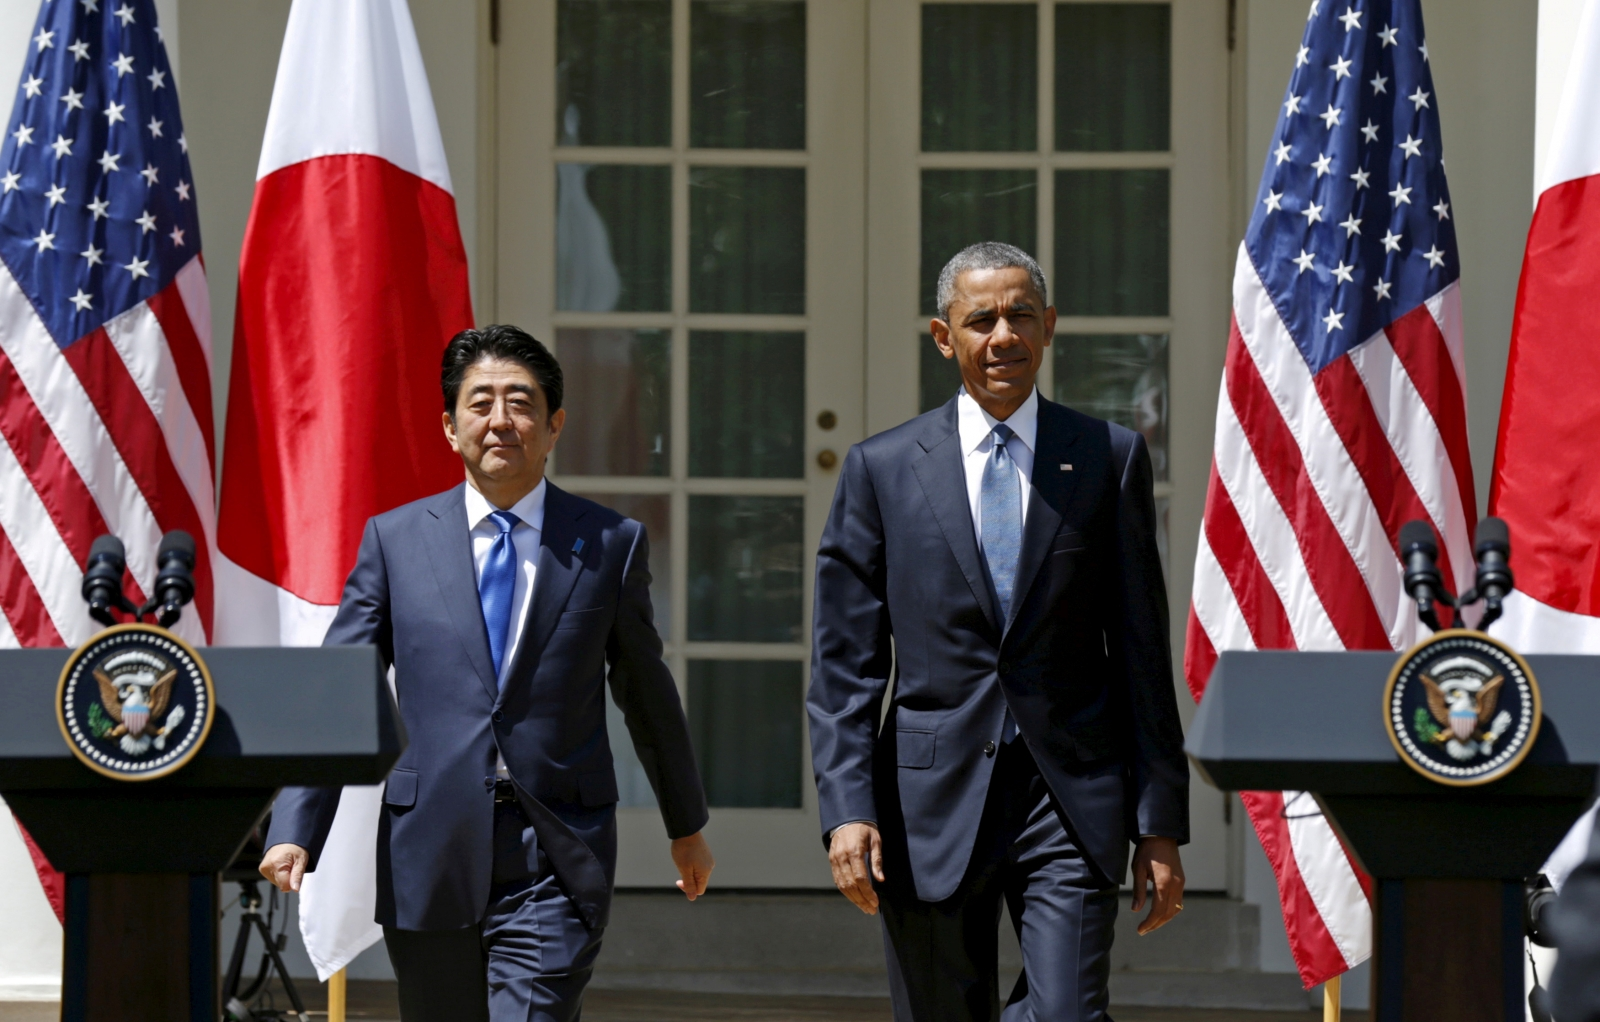 Japanese PM with Obama